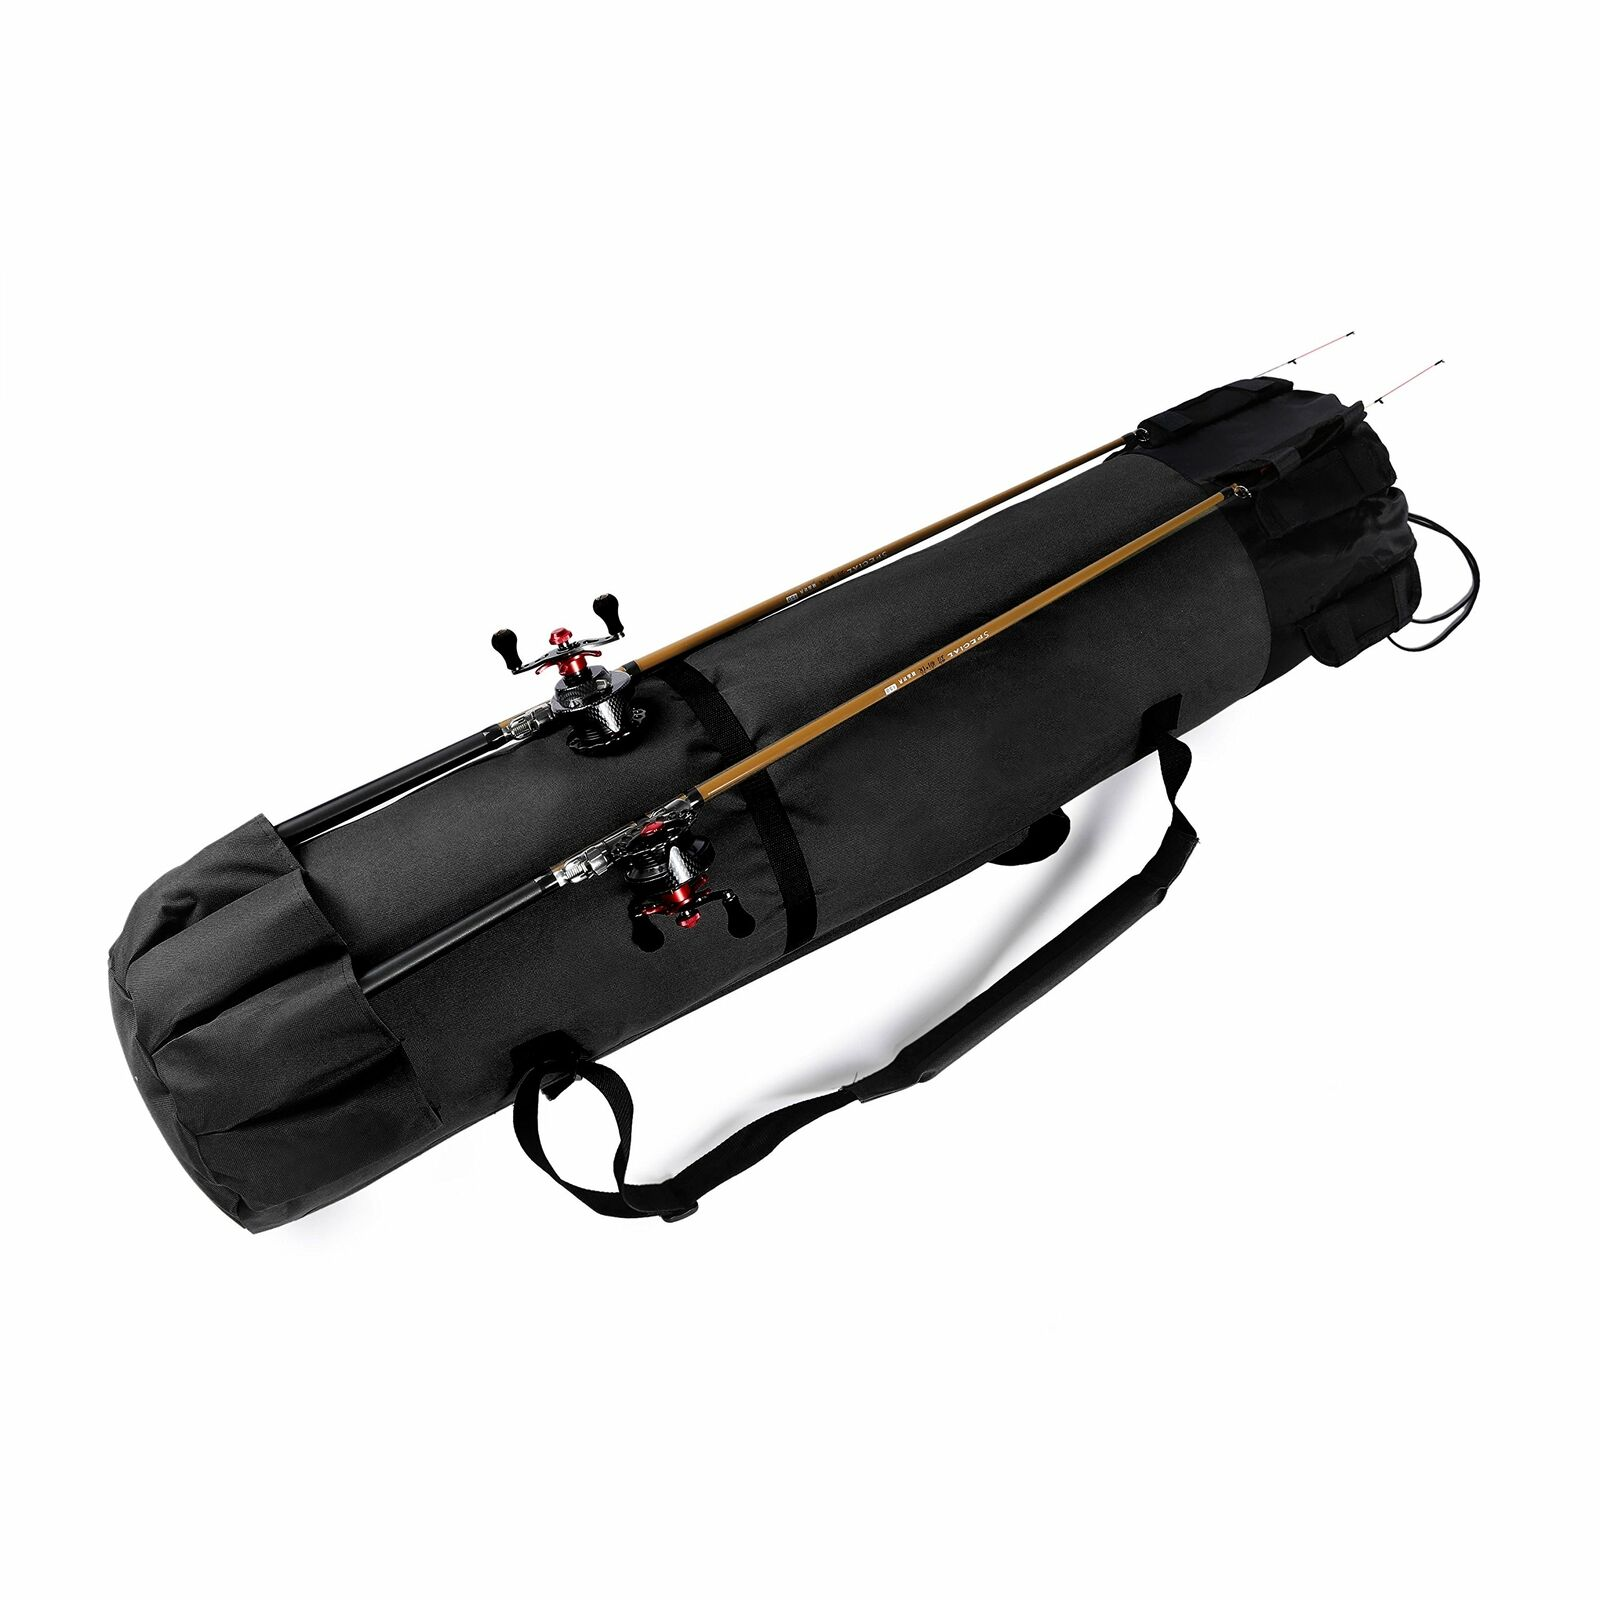 Wowelife Fishing Rod Carrier Fishing Reel Organizer Pole Storage Bag for Fish...